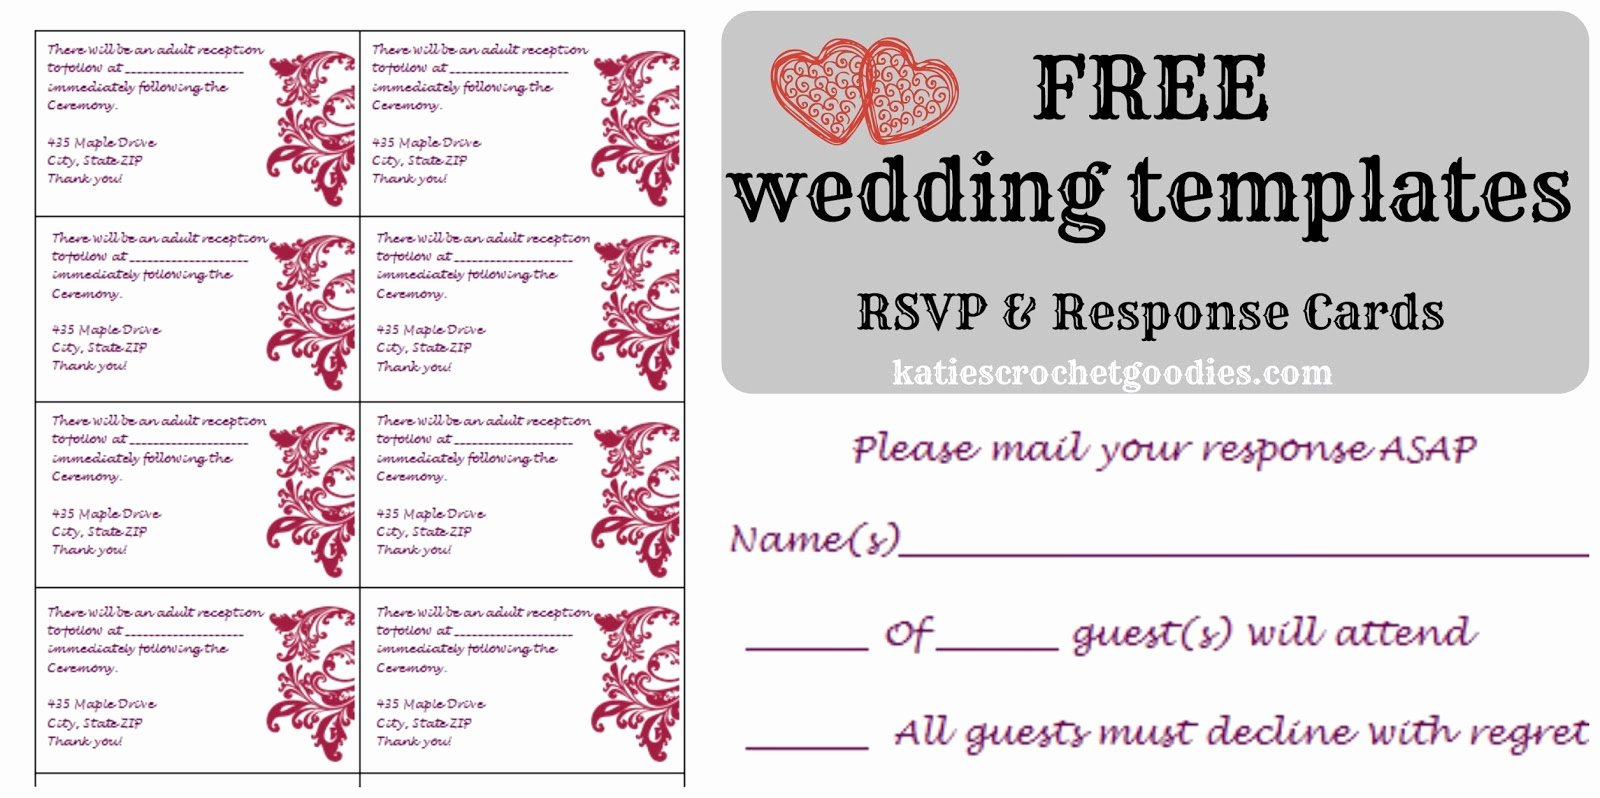 Free Printable Wedding Cards Luxury Free Wedding Templates Rsvp & Reception Cards Katie S